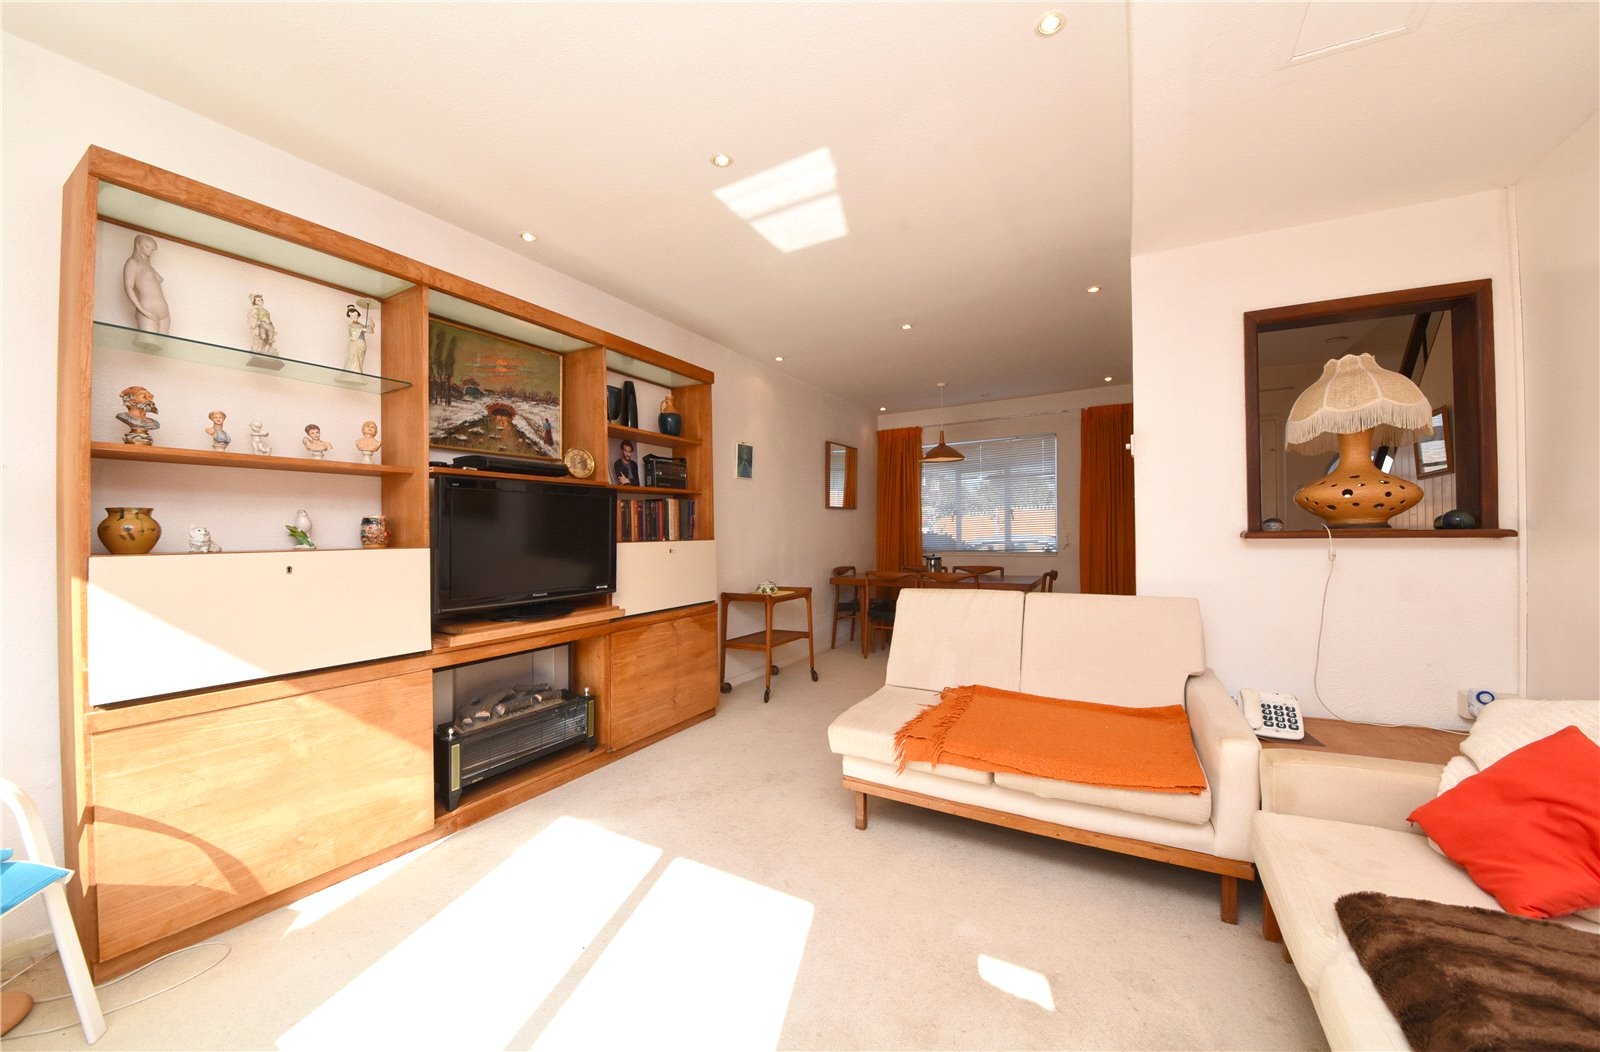 3 bed house for sale in West Finchley, N3 1PB 6